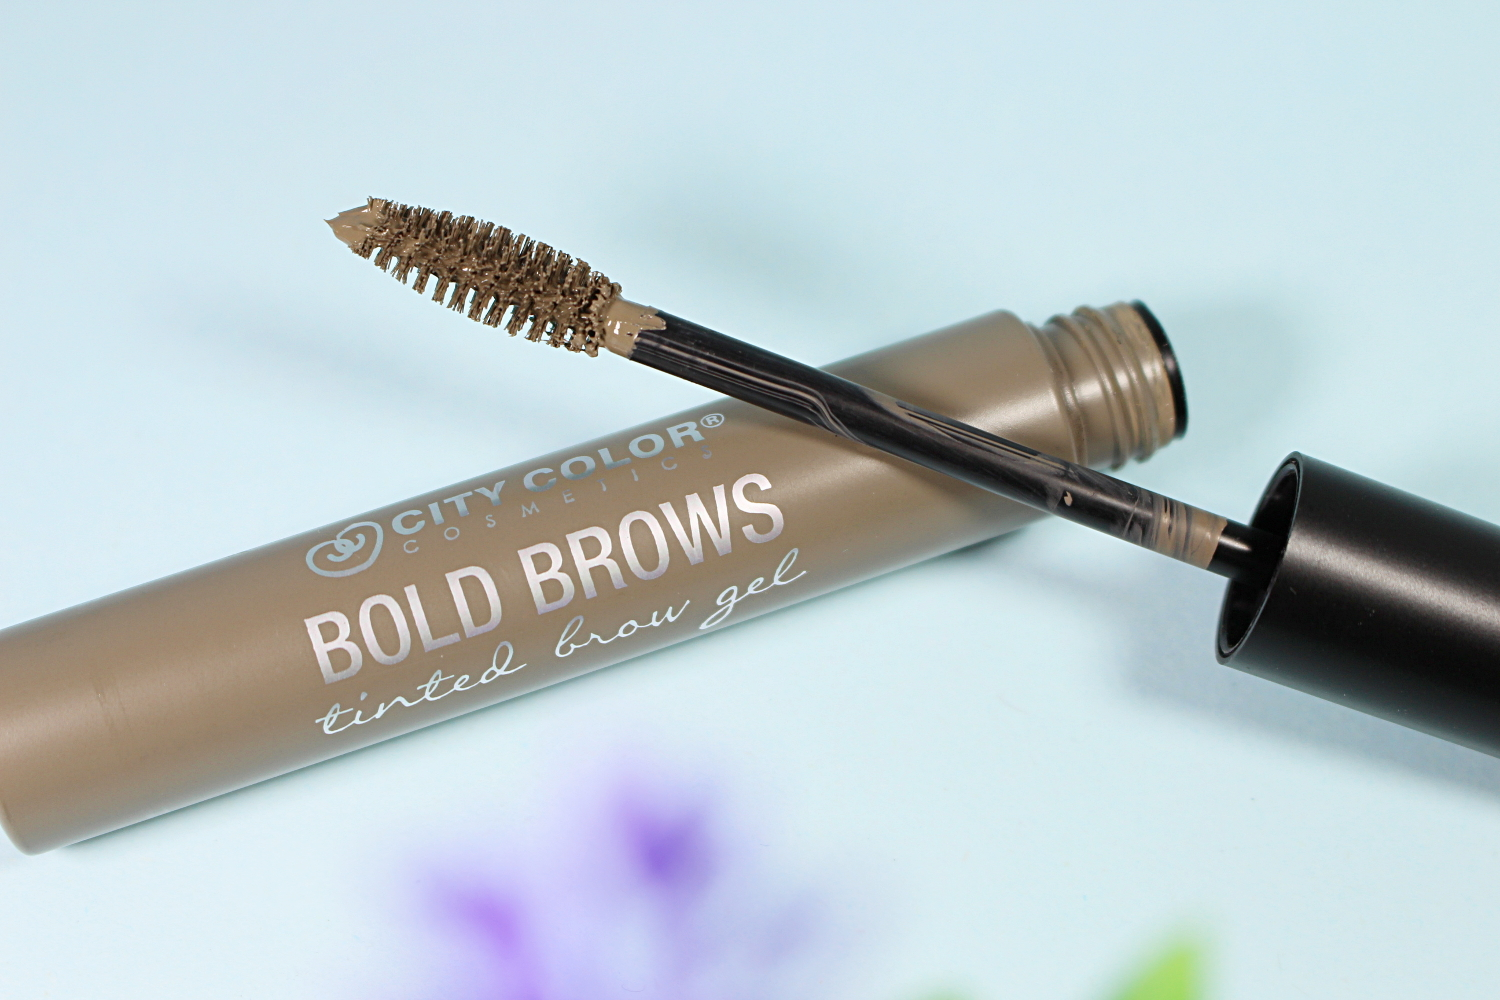 City Color Bold Brow Tinted Brow Gel 'Taupe' liz breygel makeup cosmetics review before after demo test drive affordable budget friendly brand